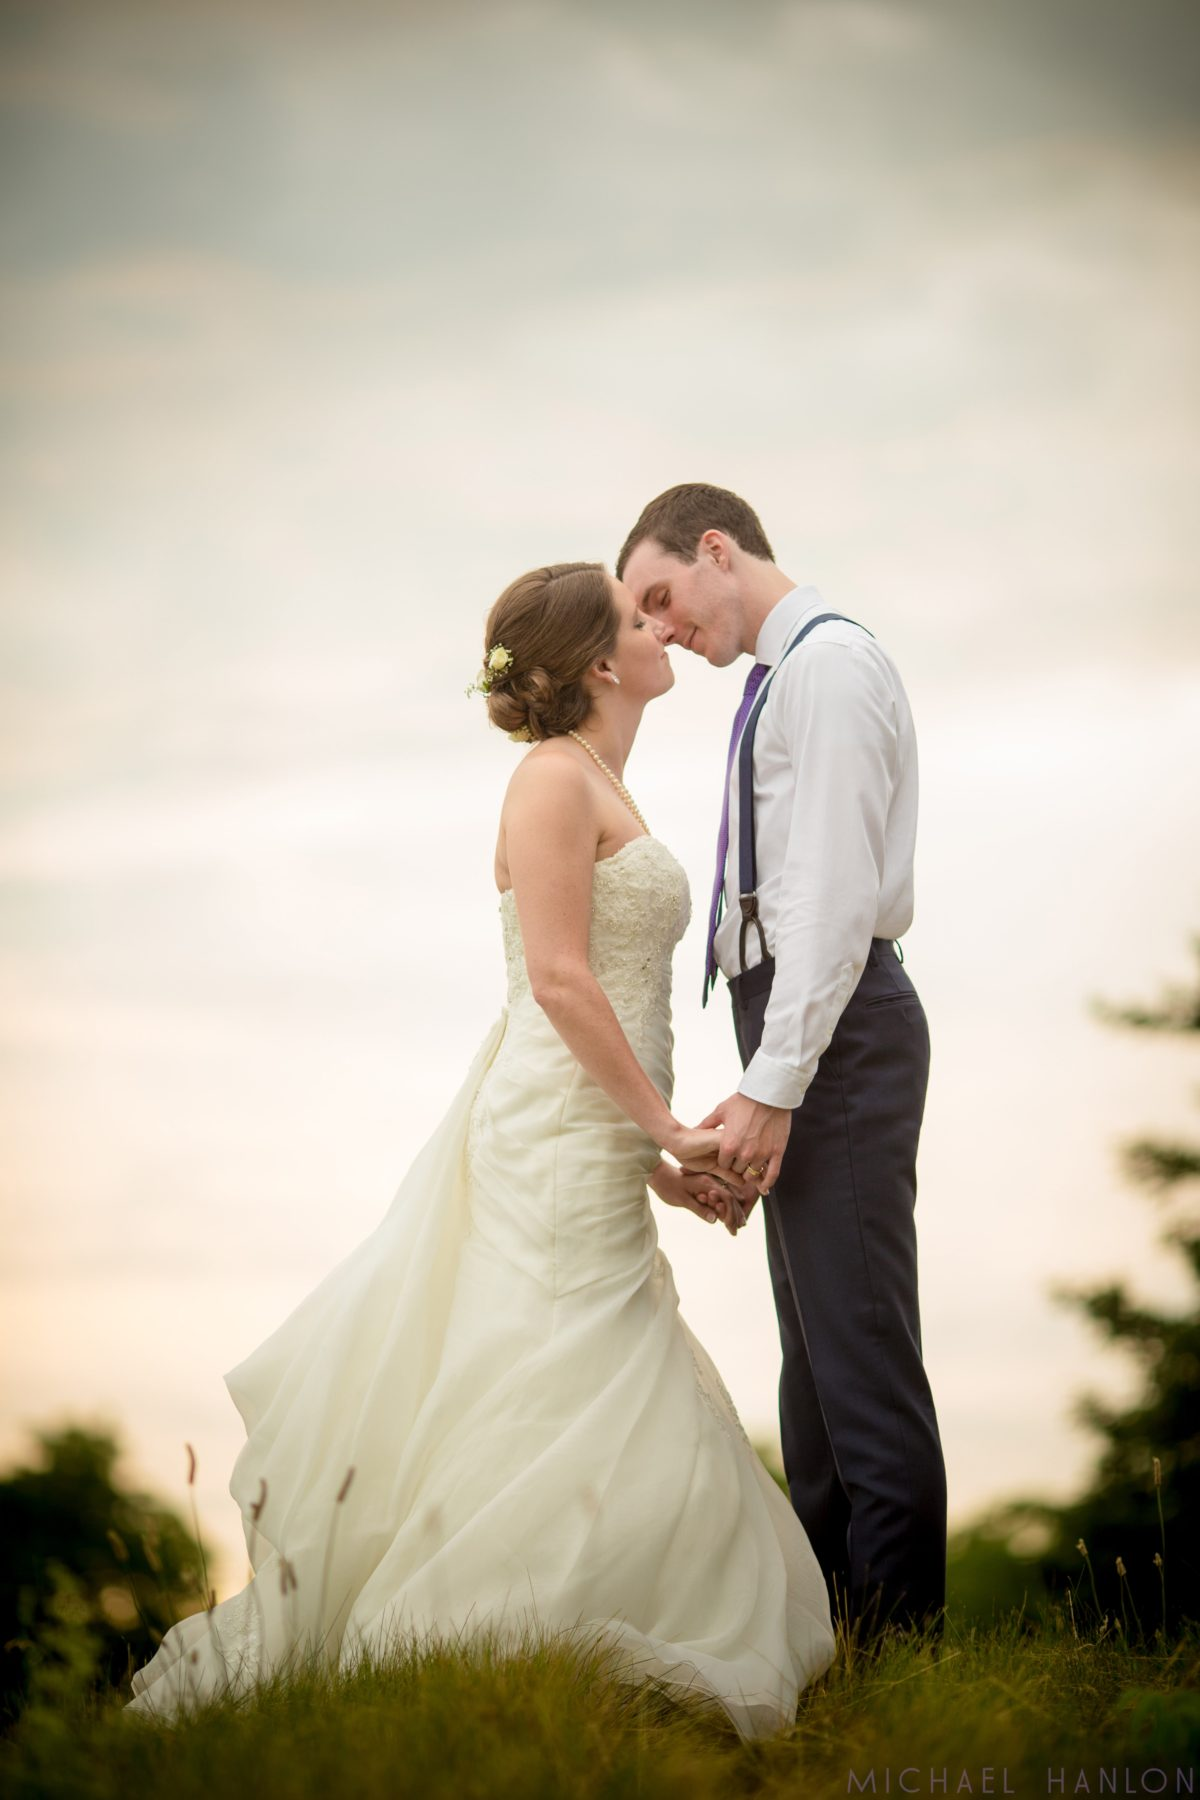 Michael Hanlon – Rochester NY Wedding Photographer